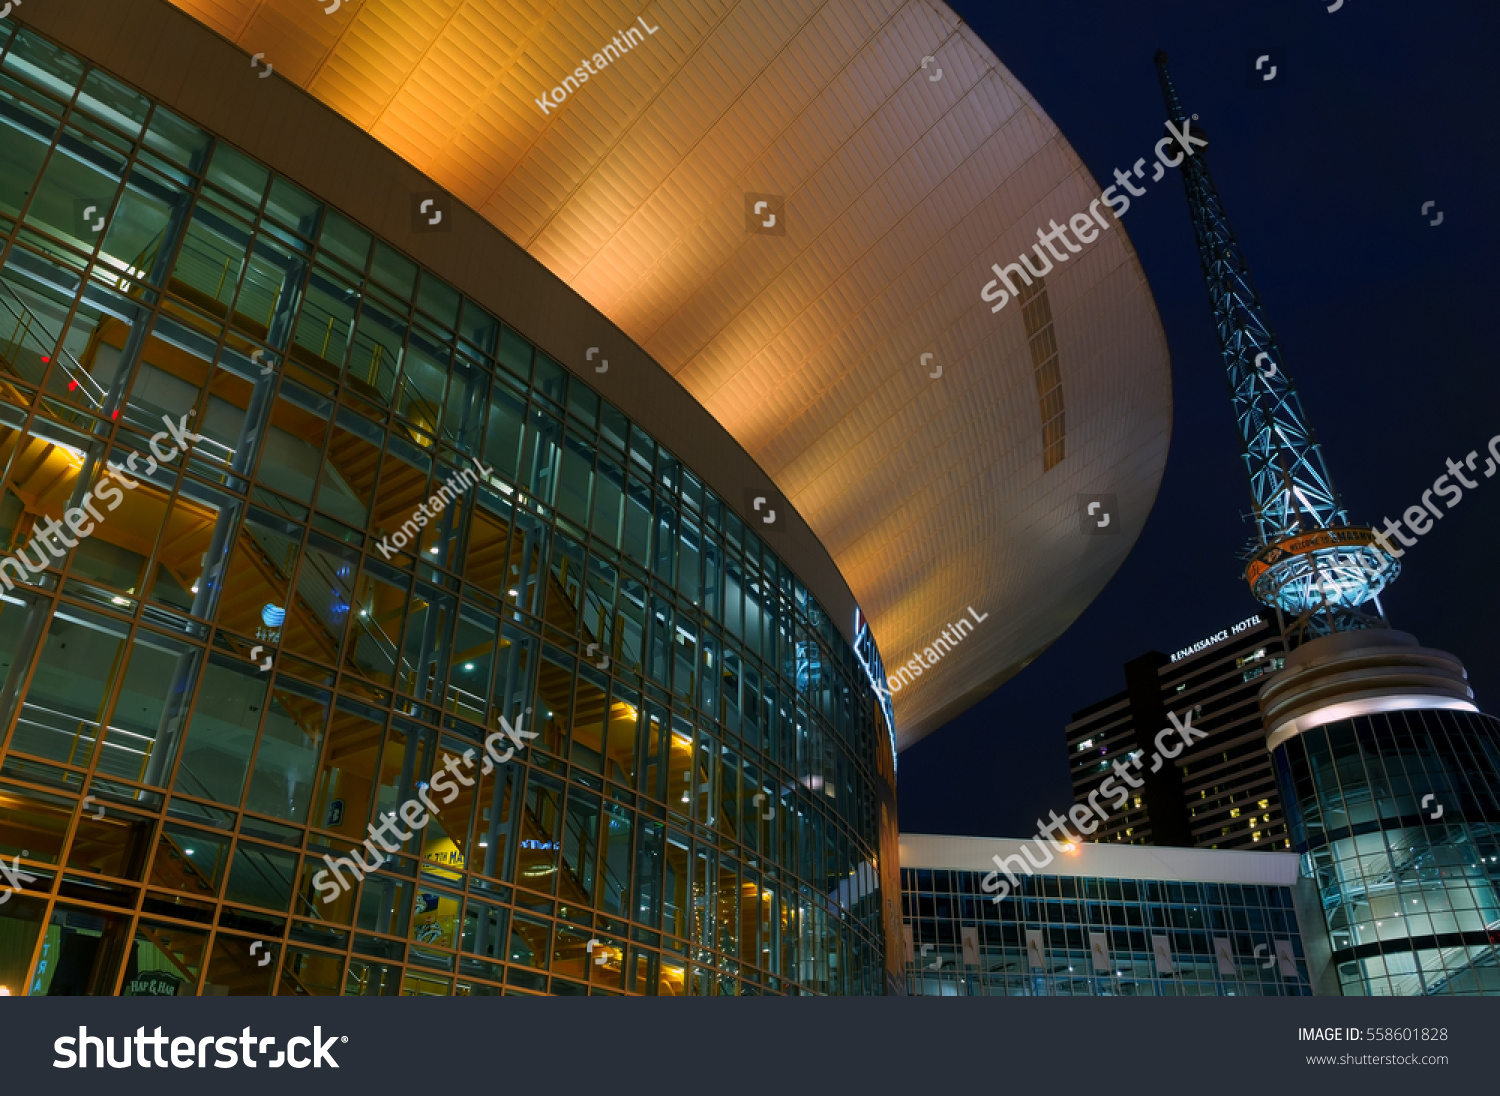 Nashville Tn Event Photography Corporate Conventions: January 2017 Nashville Tn Night View Stock Photo 558601828